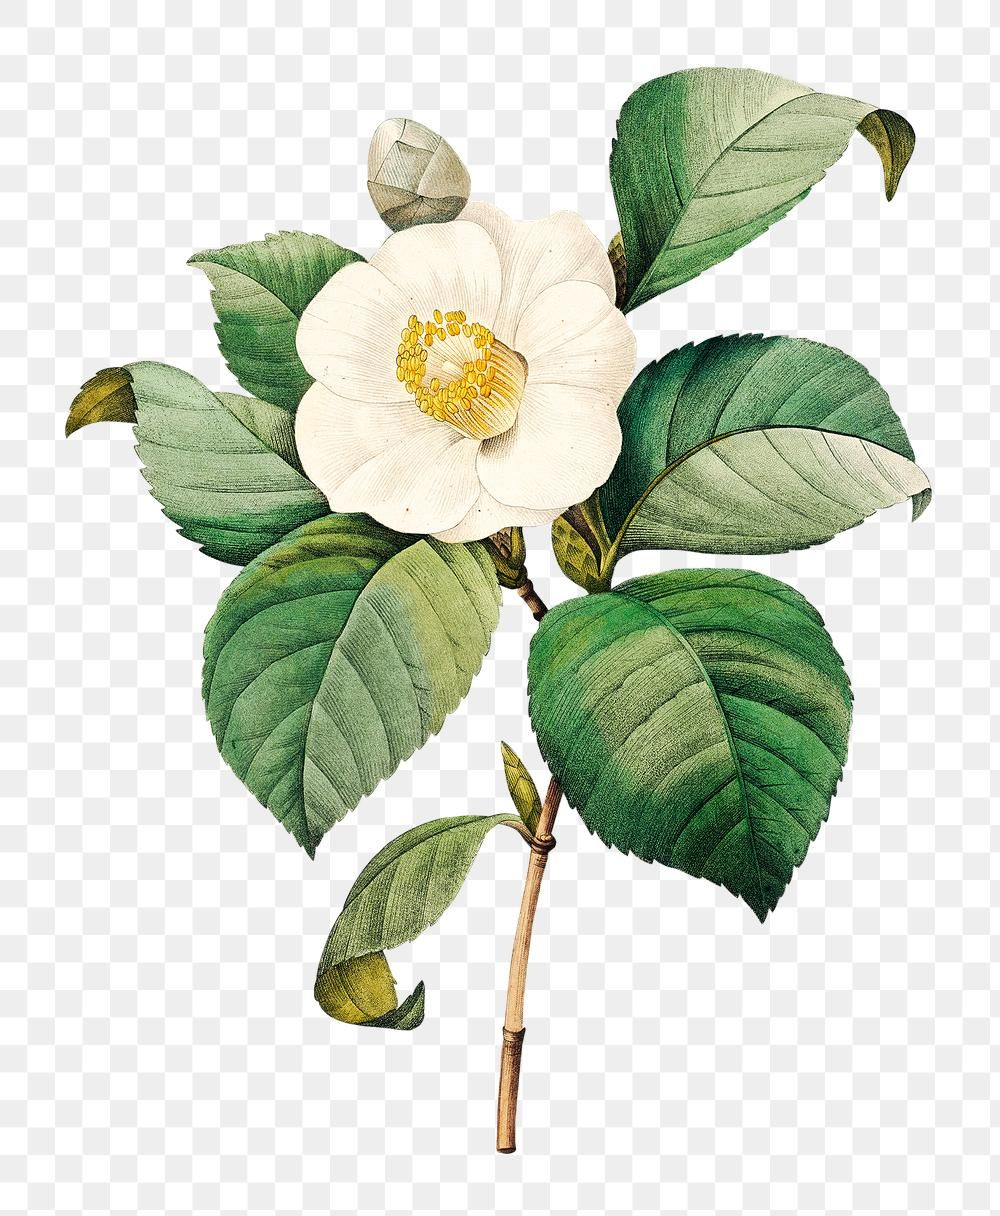 White Japanese Camellia Flower Sticker Design Element Free Image By Rawpixel Com In 2020 Free Watercolor Flowers Flower Painting Watercolor Flowers